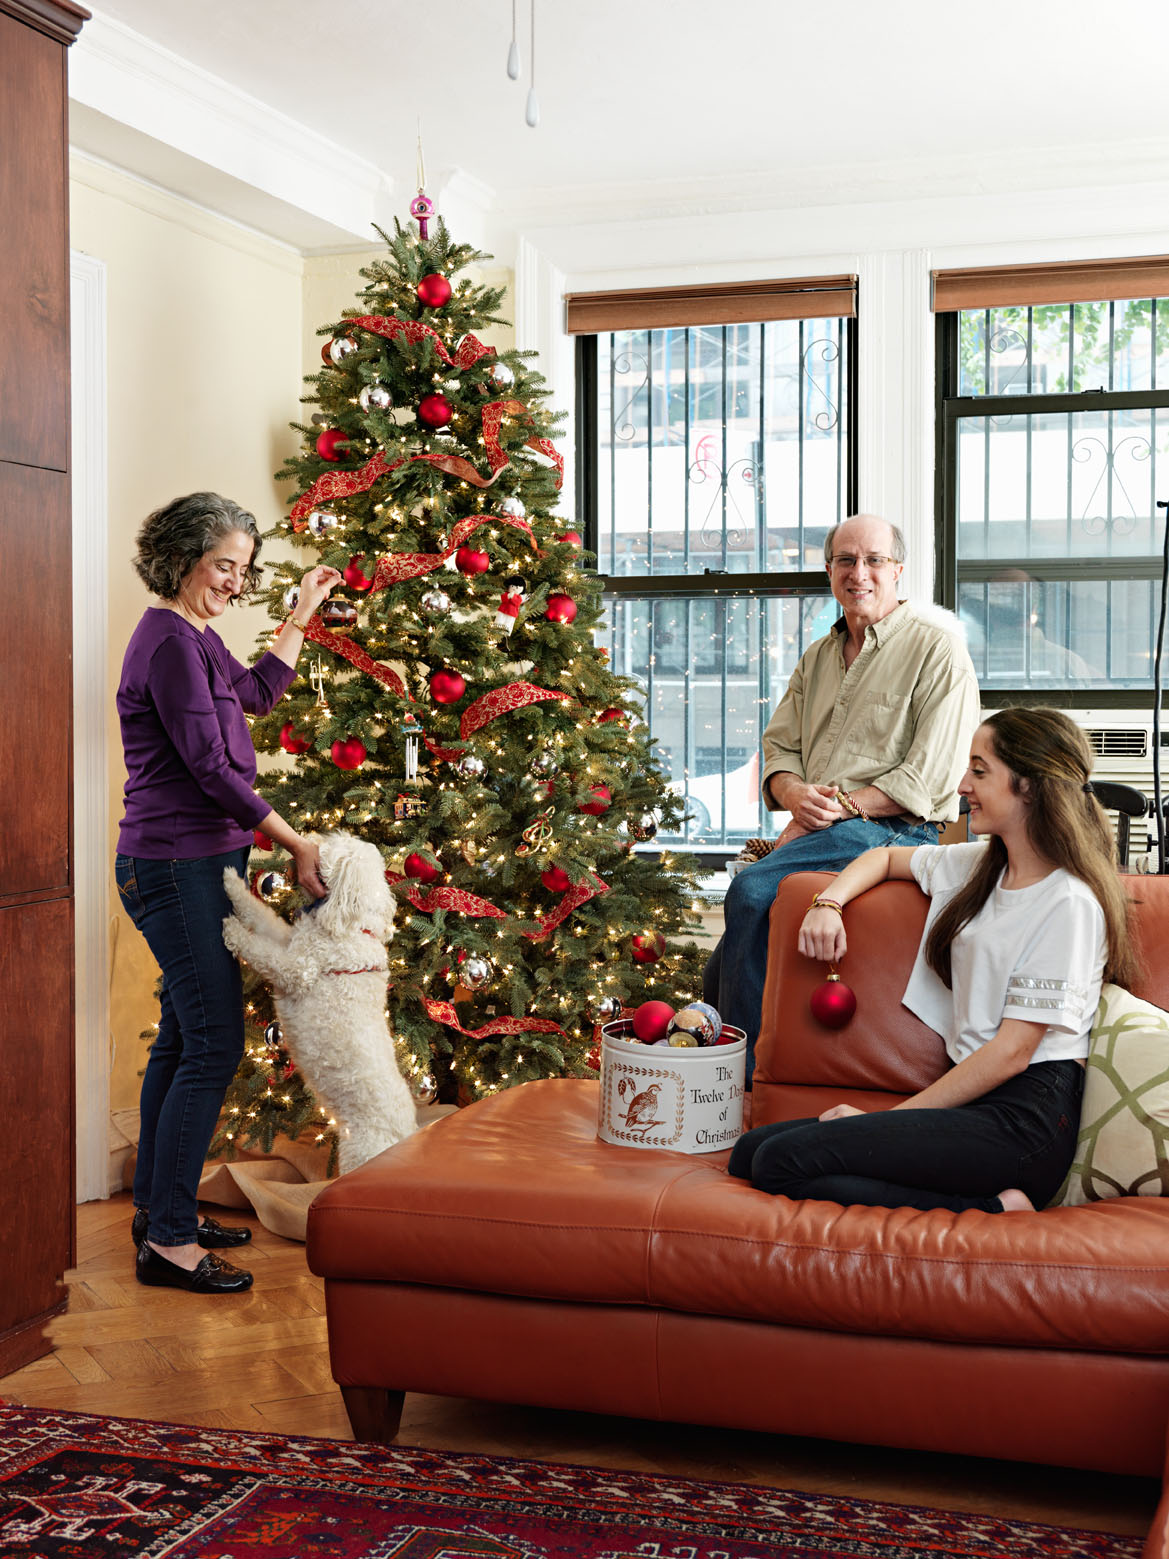 Modern Life: A Dual-Faith New York City Family Juggles Christmas and Hanukkah